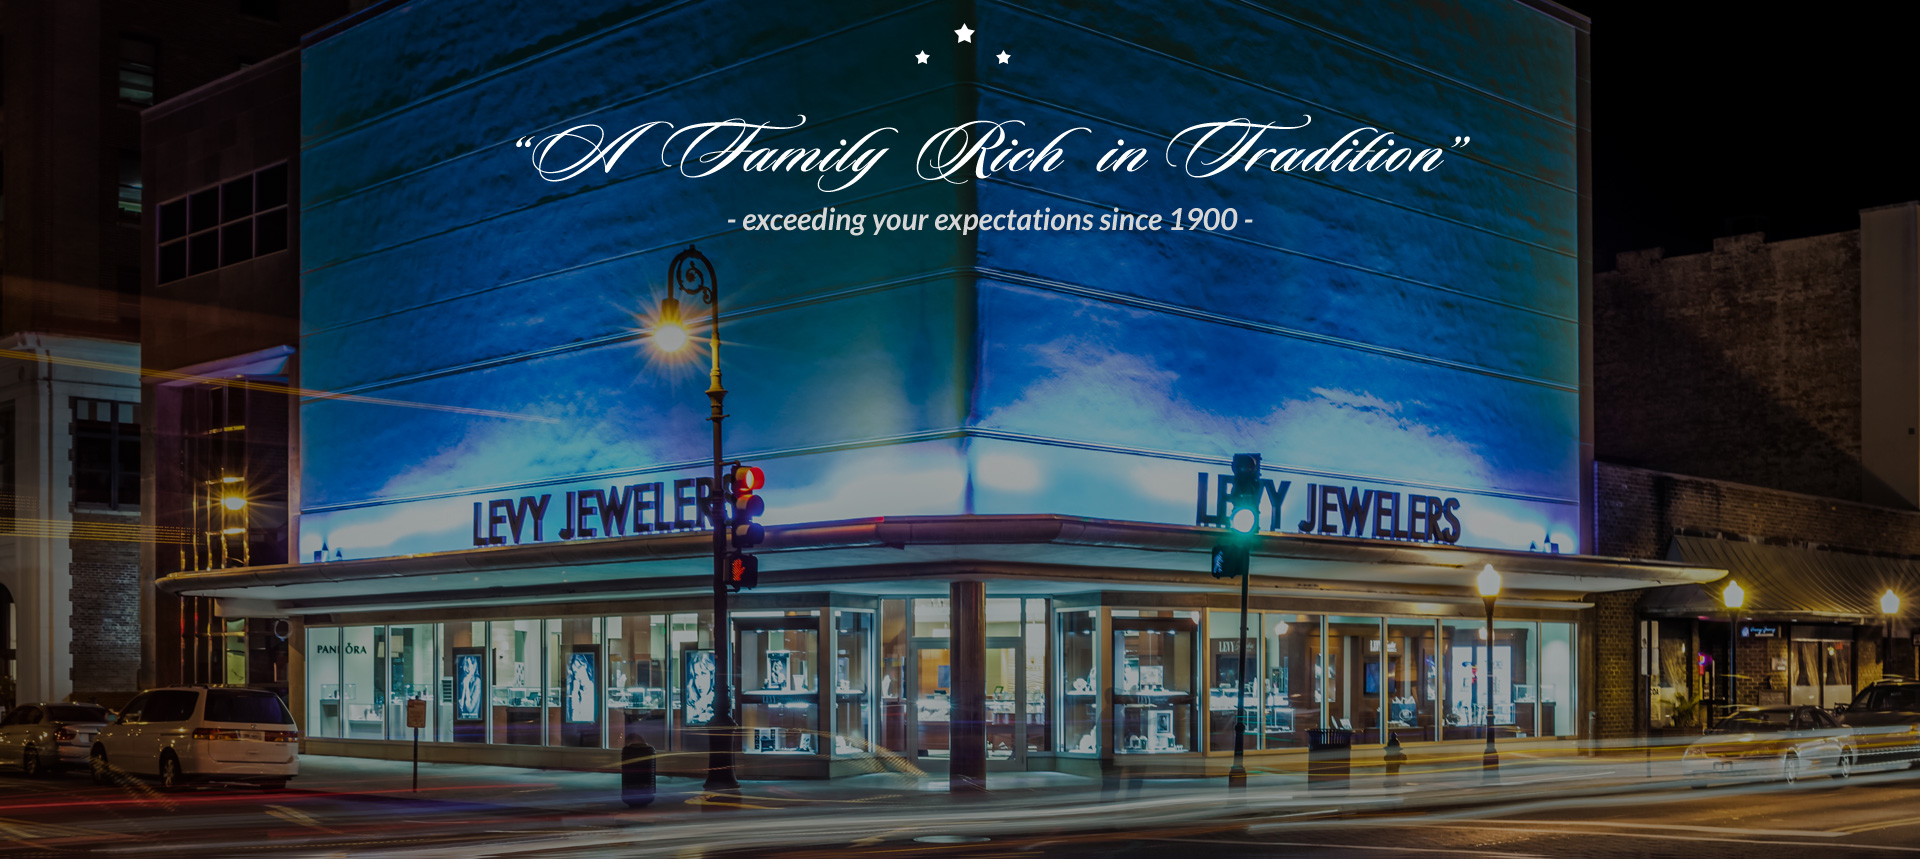 Levy Jewelers Since 1900